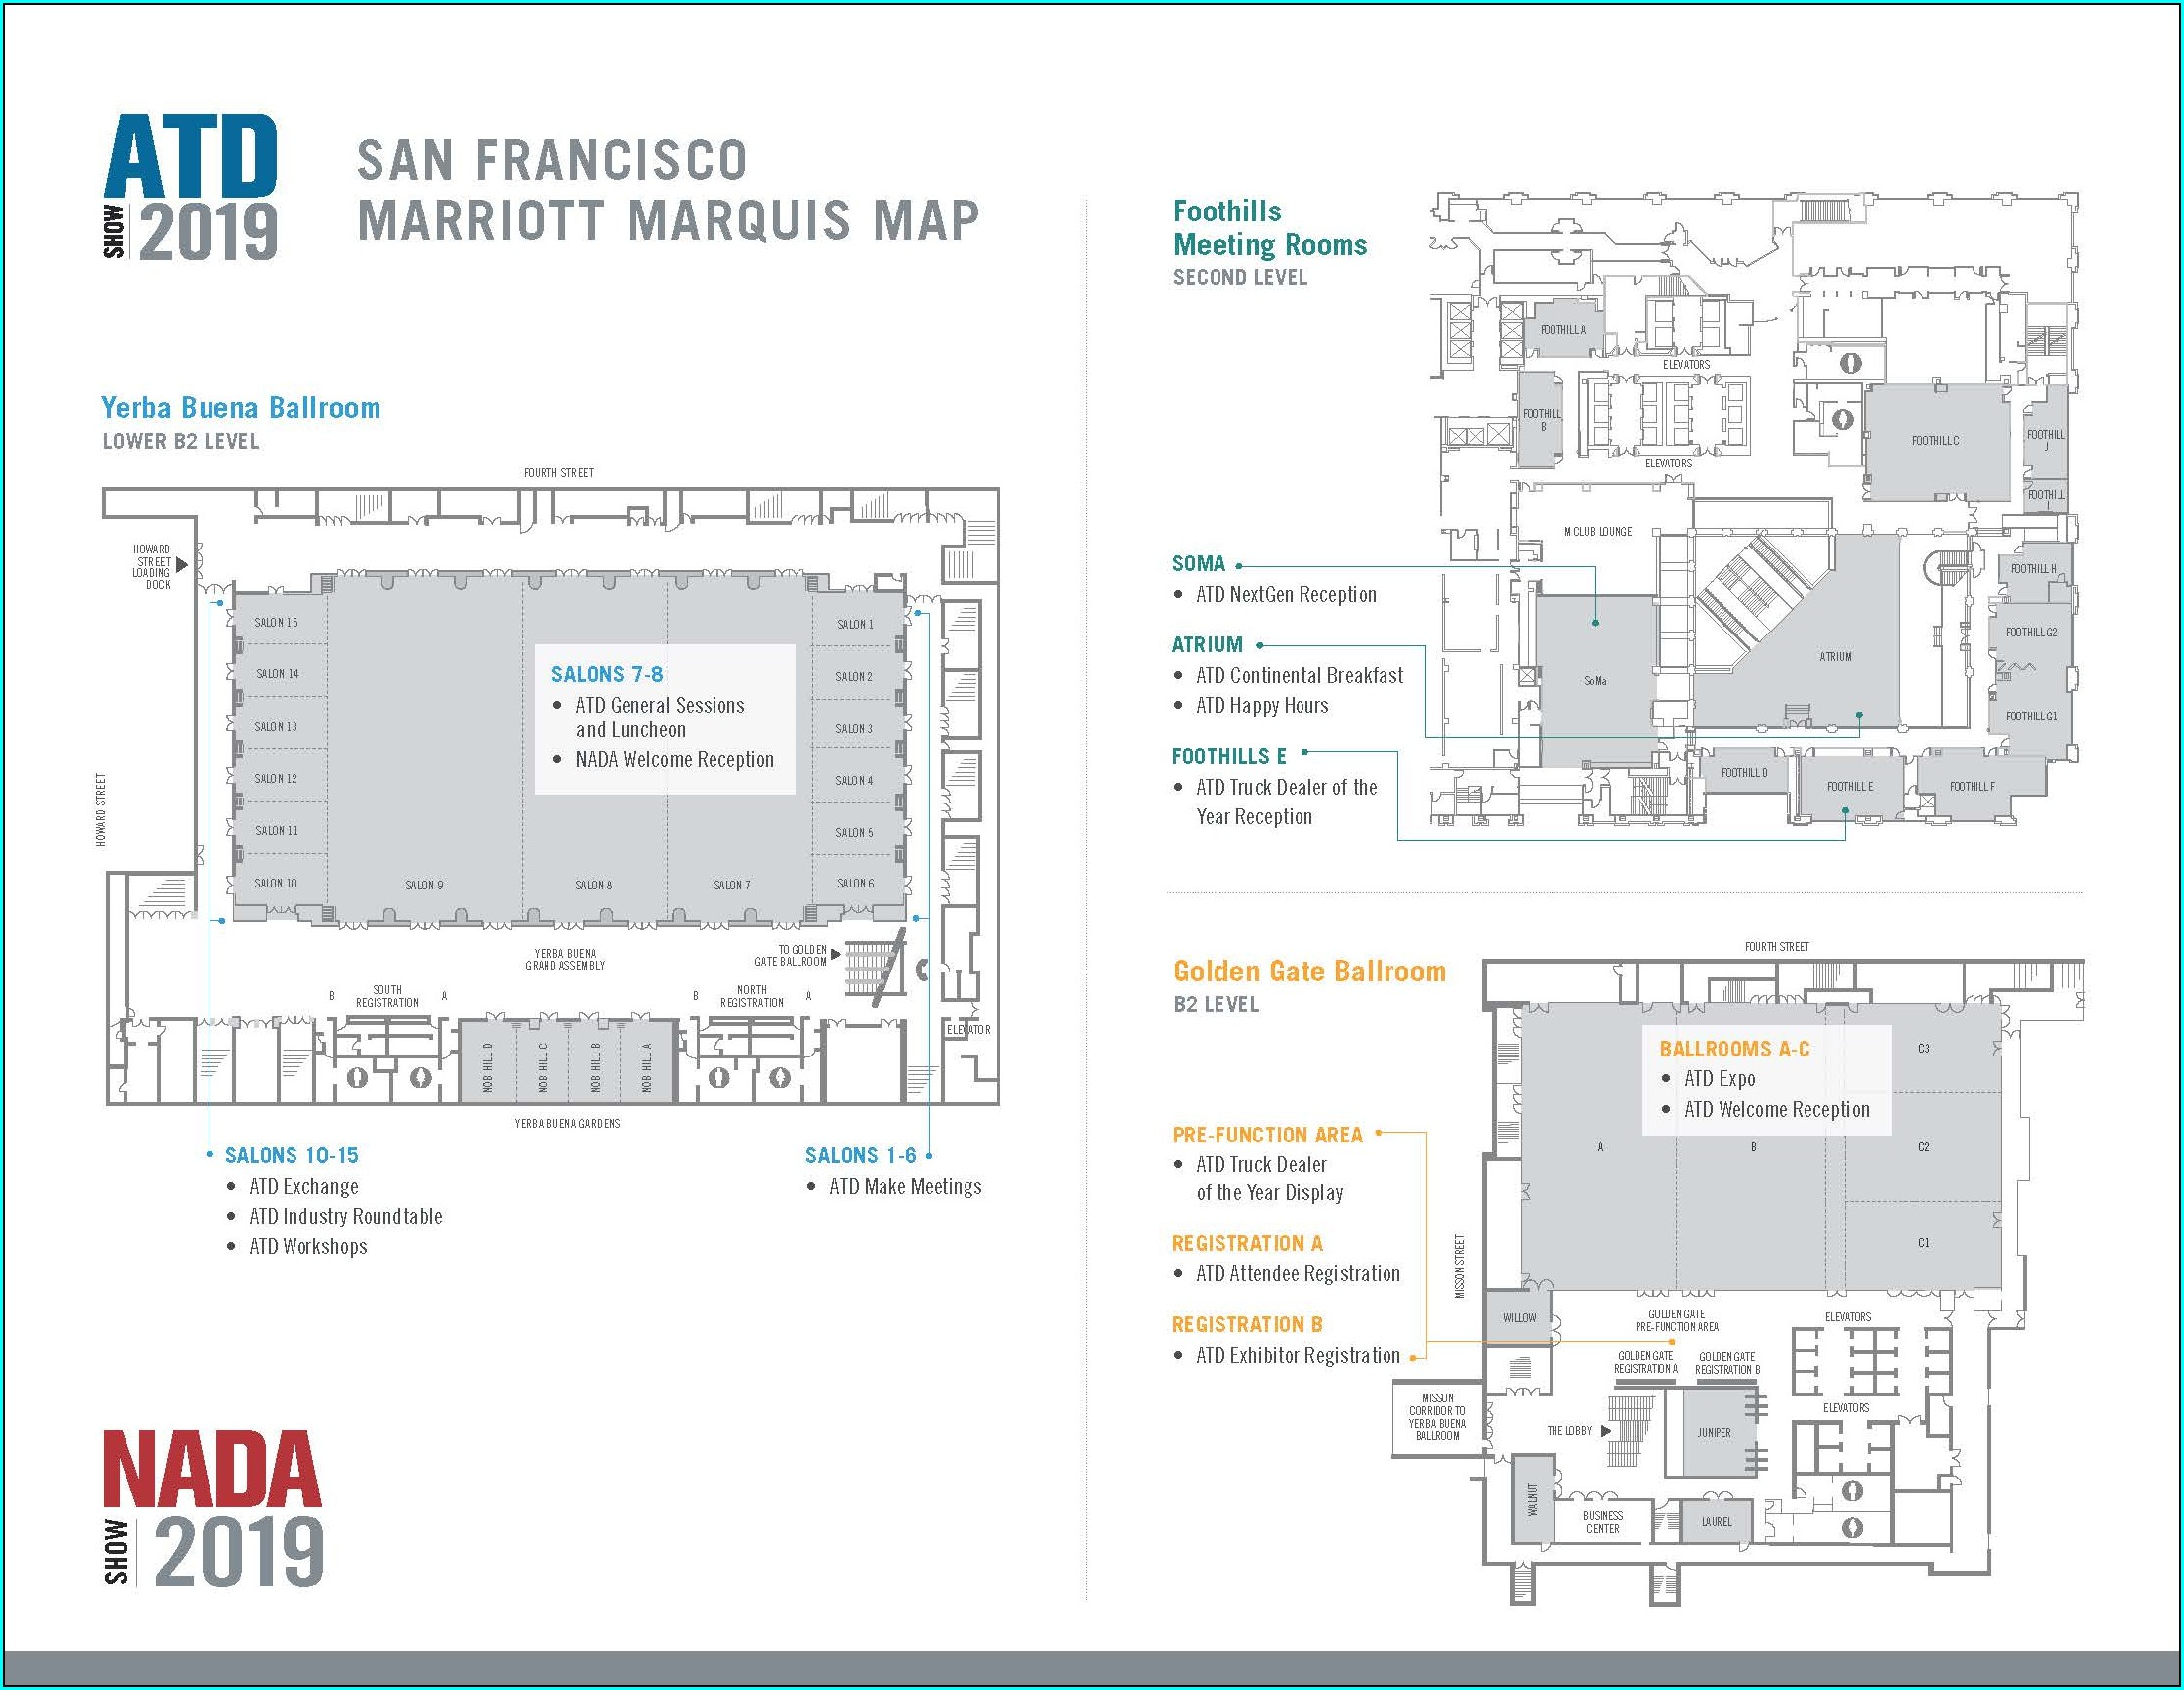 Marriott Marquis San Francisco Map